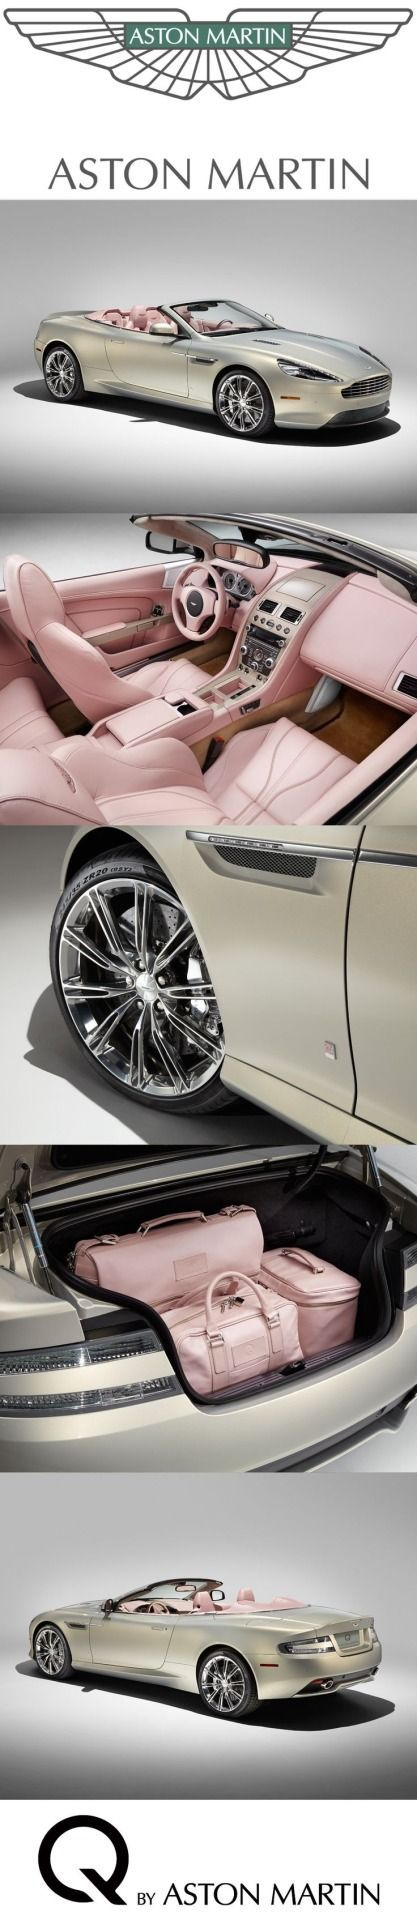 From fast cars aston martin in cashmier and champagne pink